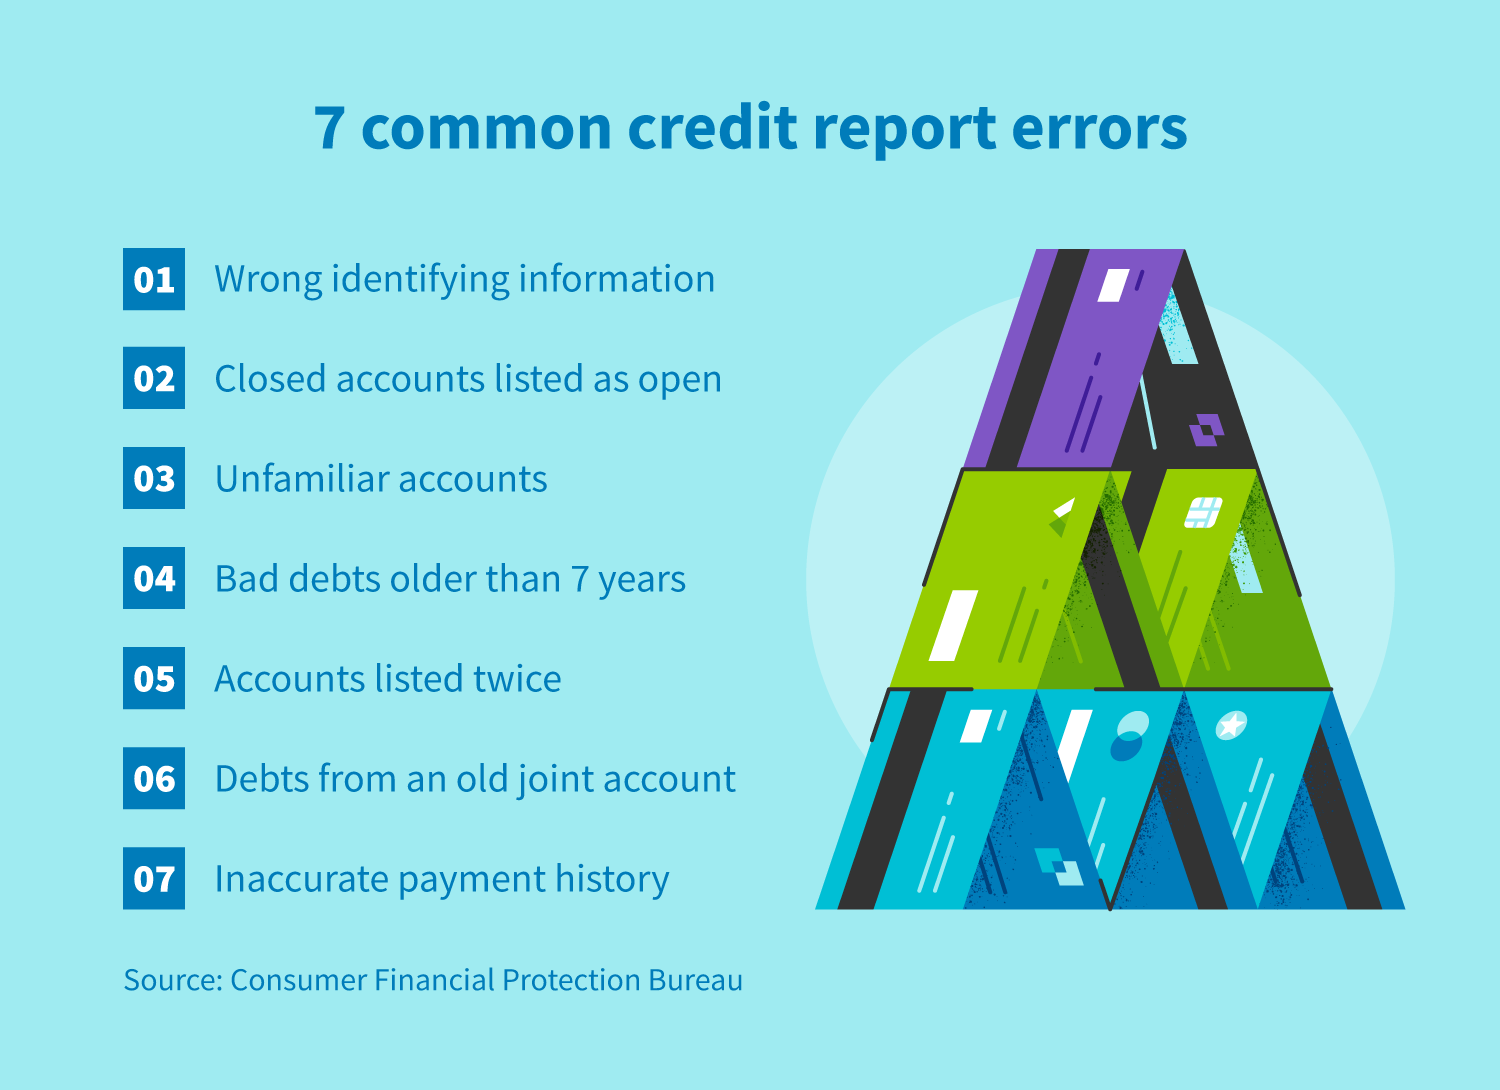 7 common credit report errors - incorrect information, closed accounts listed as open, unfamiliar accounts, bad debts, duplicate accounts, debts from ex-spouse, inaccurate payment history